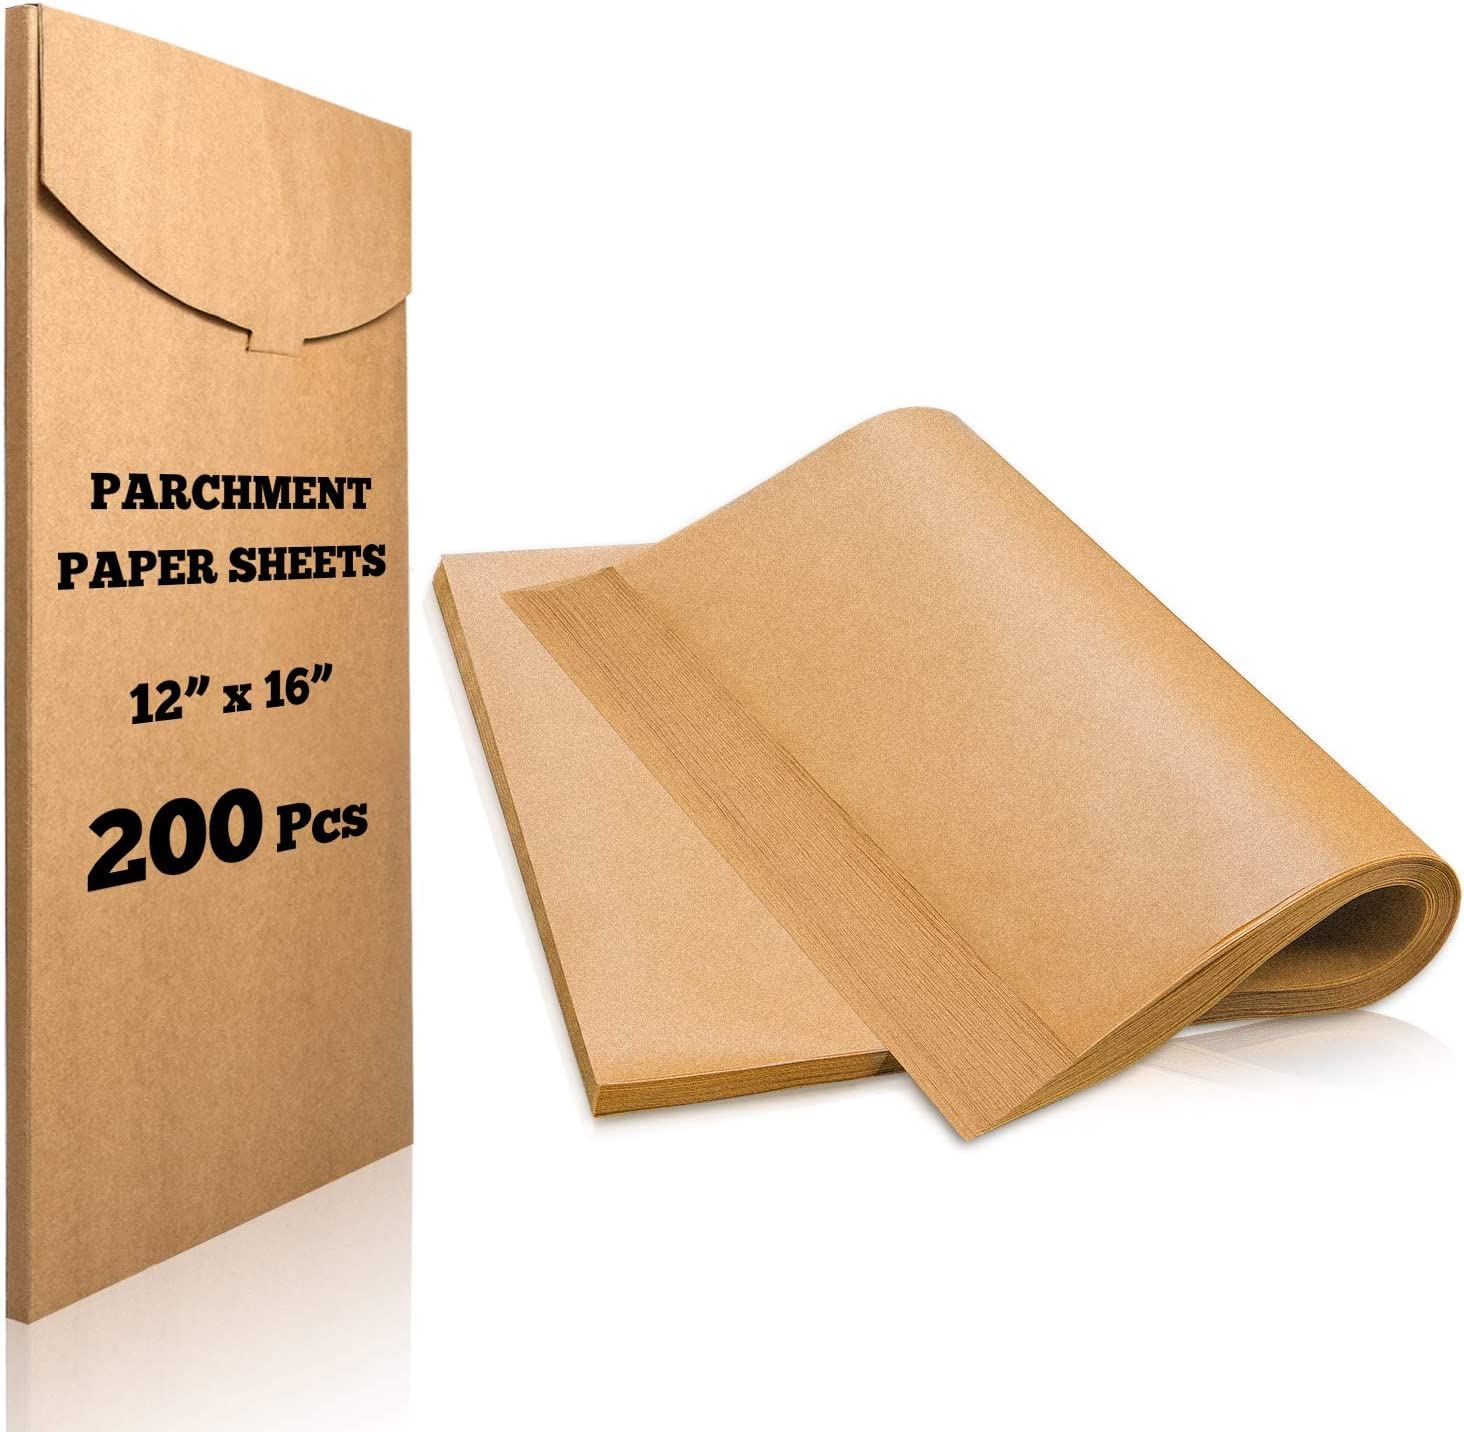 Hiware 200 Pieces Parchment Paper Sheets 12 x 16 Inch, Precut Non-Stick Parchment Sheets for Baking, Cooking, Grilling, Air Fryer and Steaming - Unbleached, Fit for Half Sheet Pans